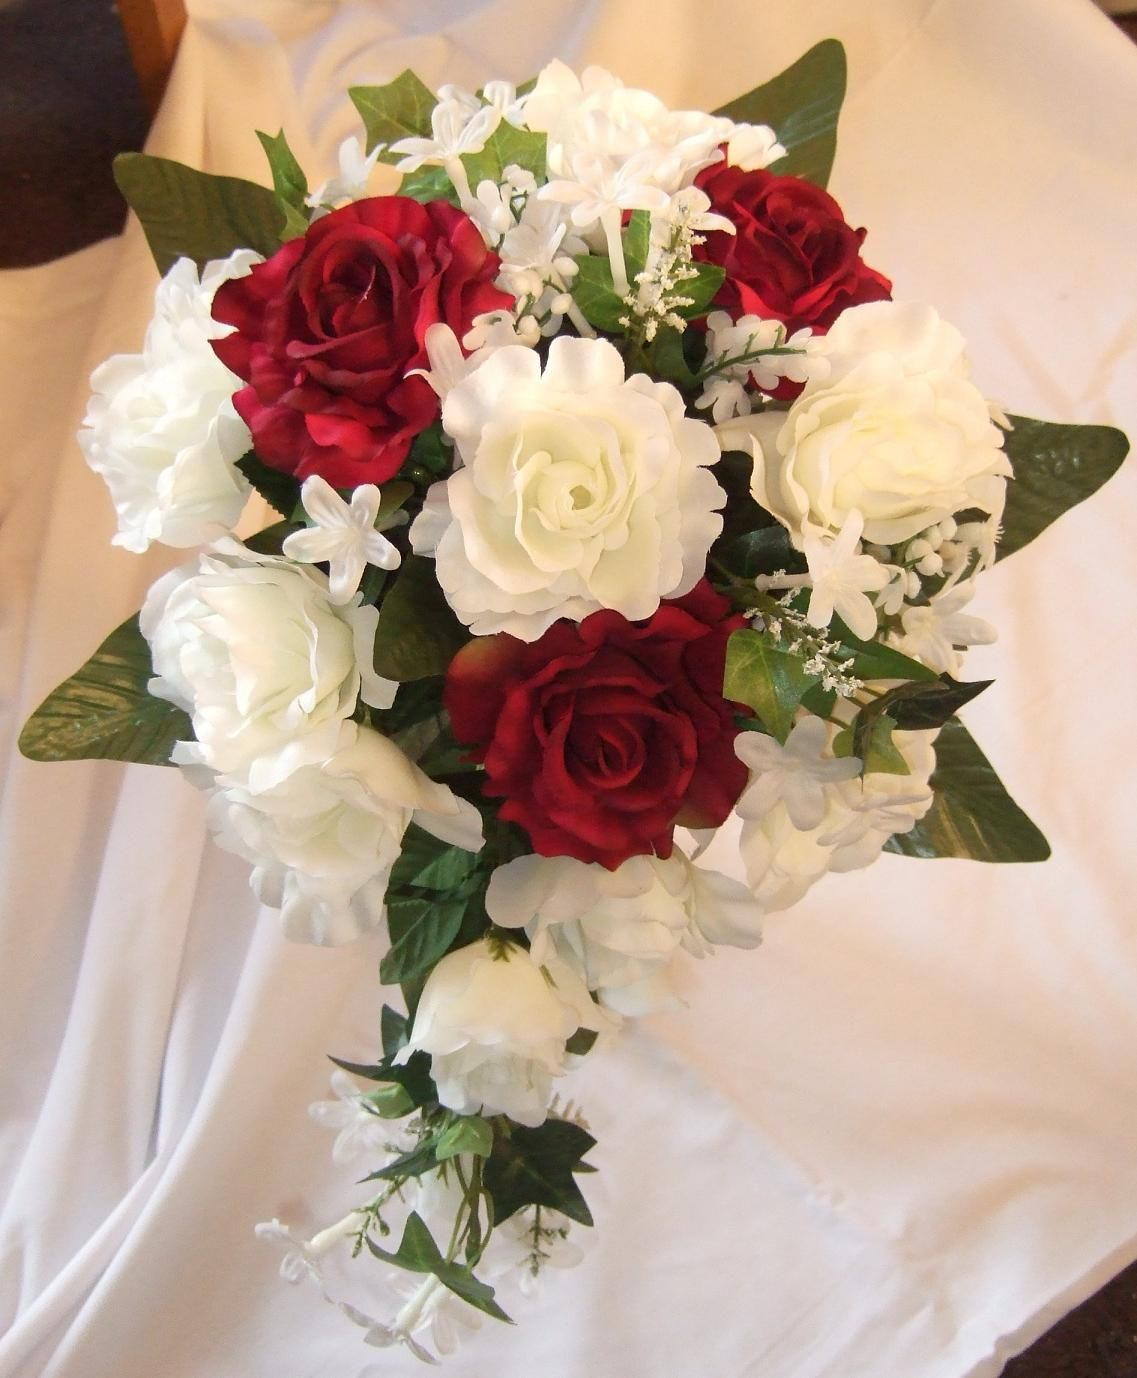 Bouquet de fleur recherche google flowers pinterest wedding flower bouquets flower ideas burgundy and white roses burgundy silk wedding flower dhlflorist Choice Image